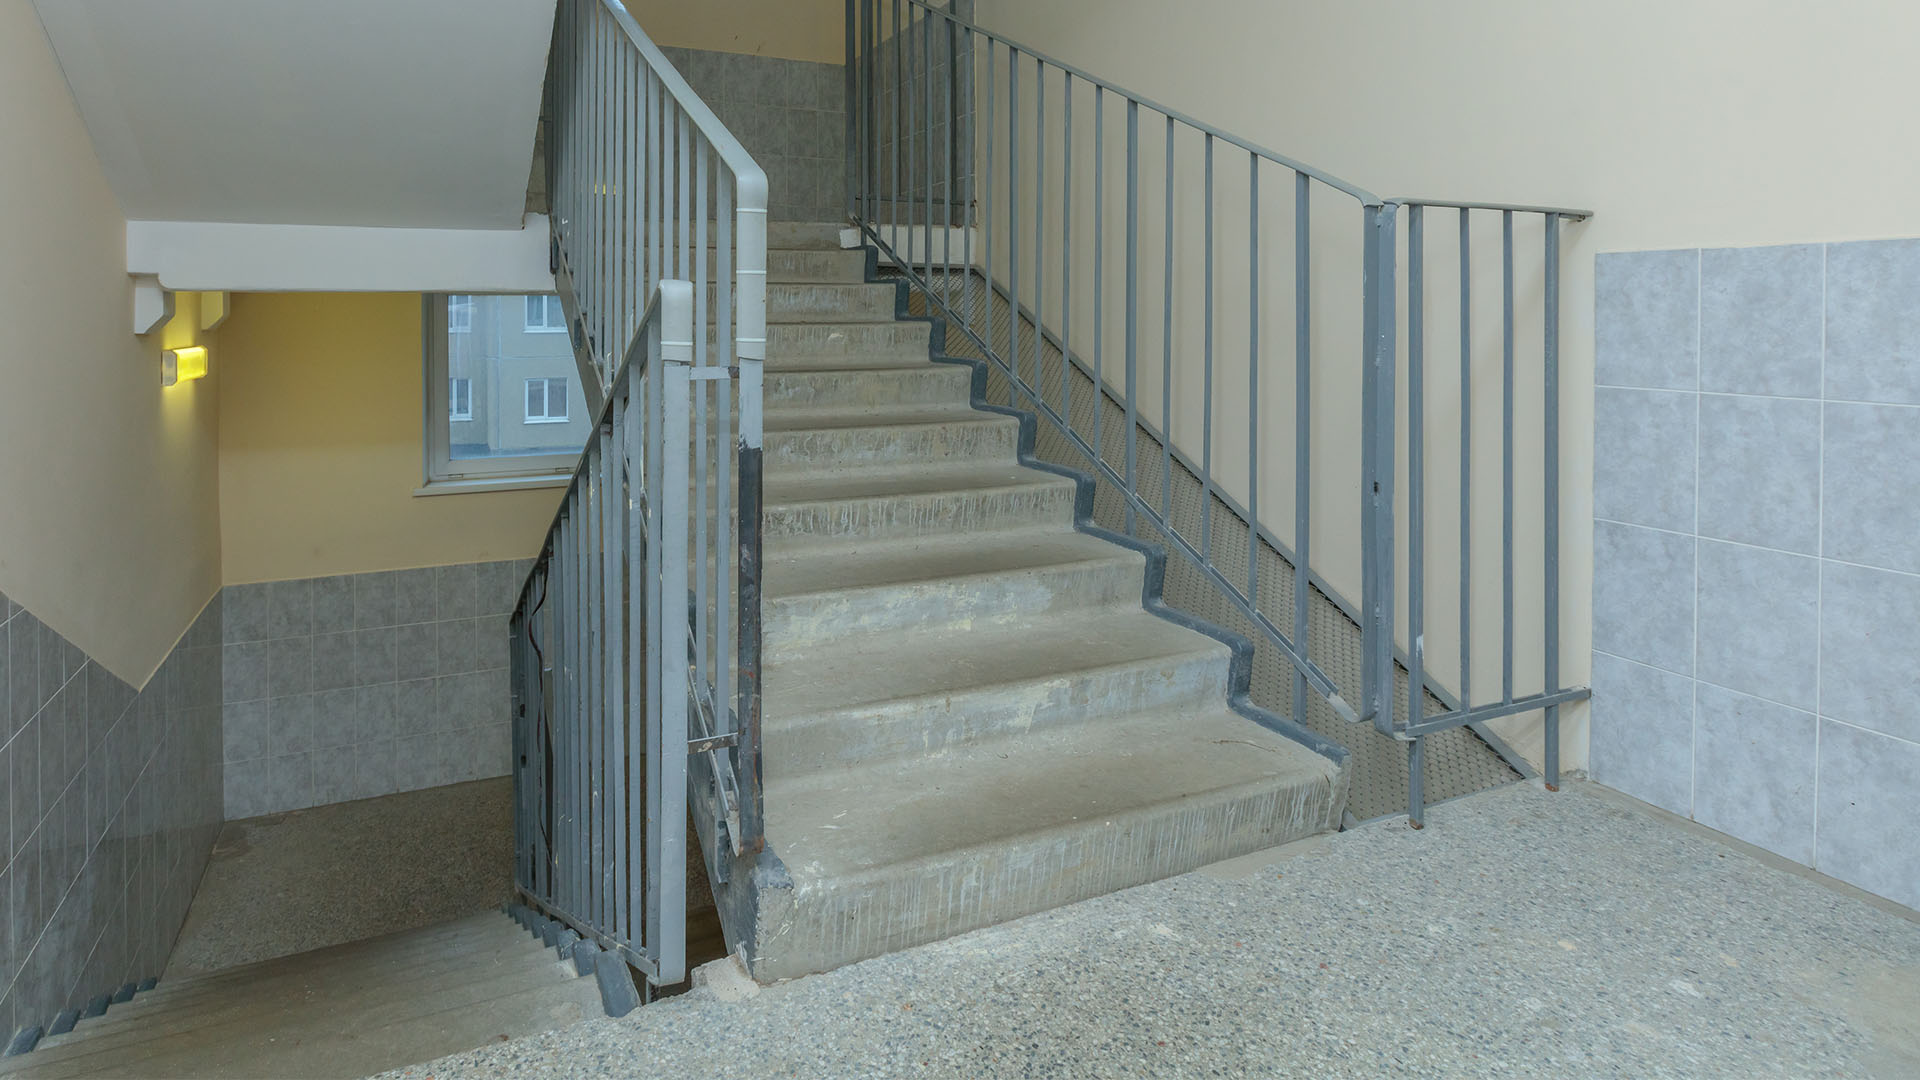 apartment building stairwell with metal handrail